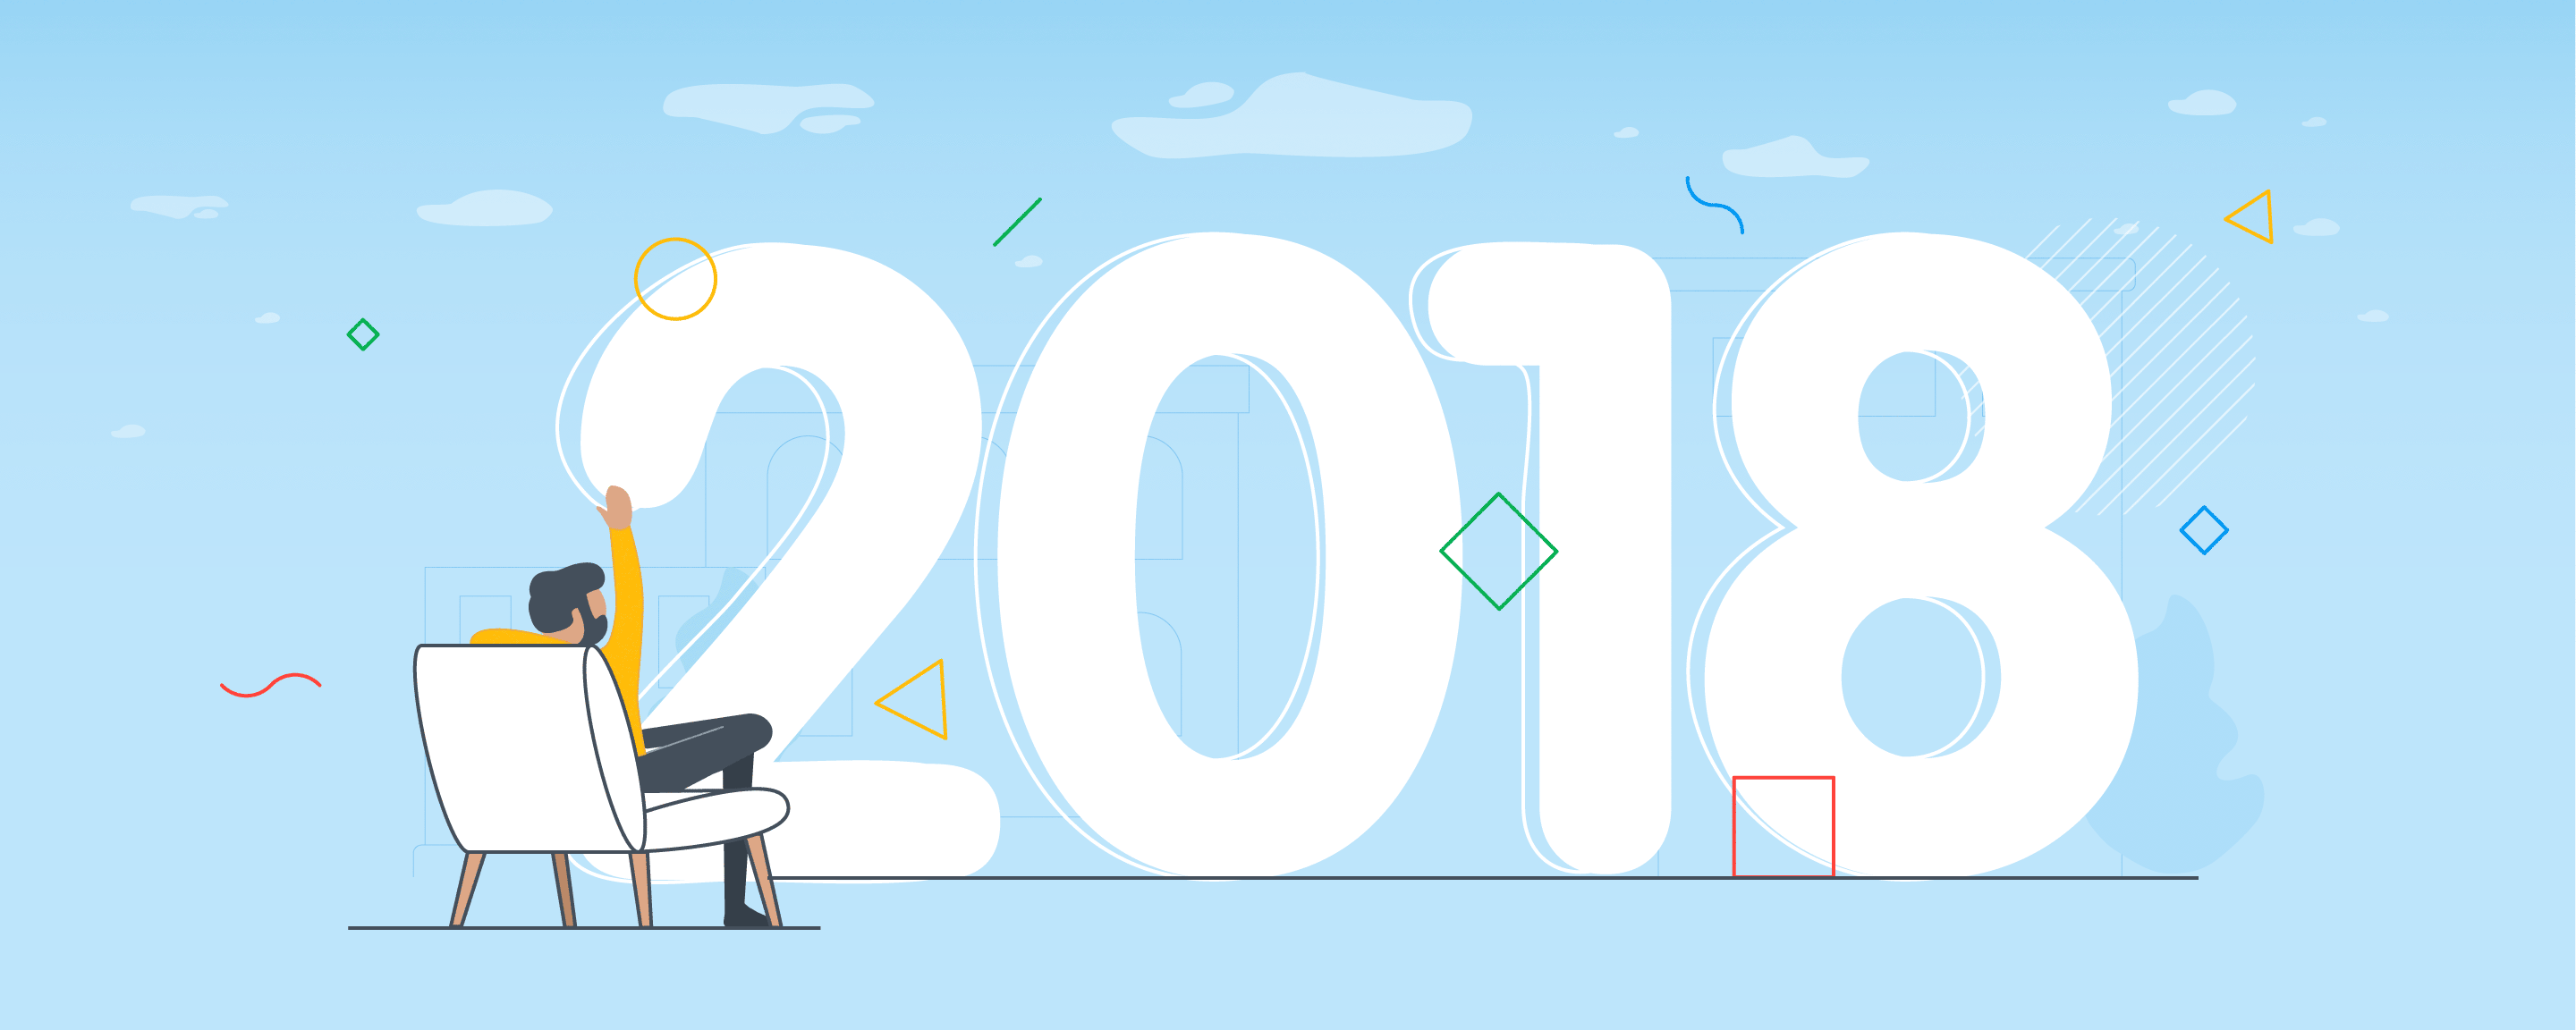 Ecwid E-commerce 2018: A Year in Review